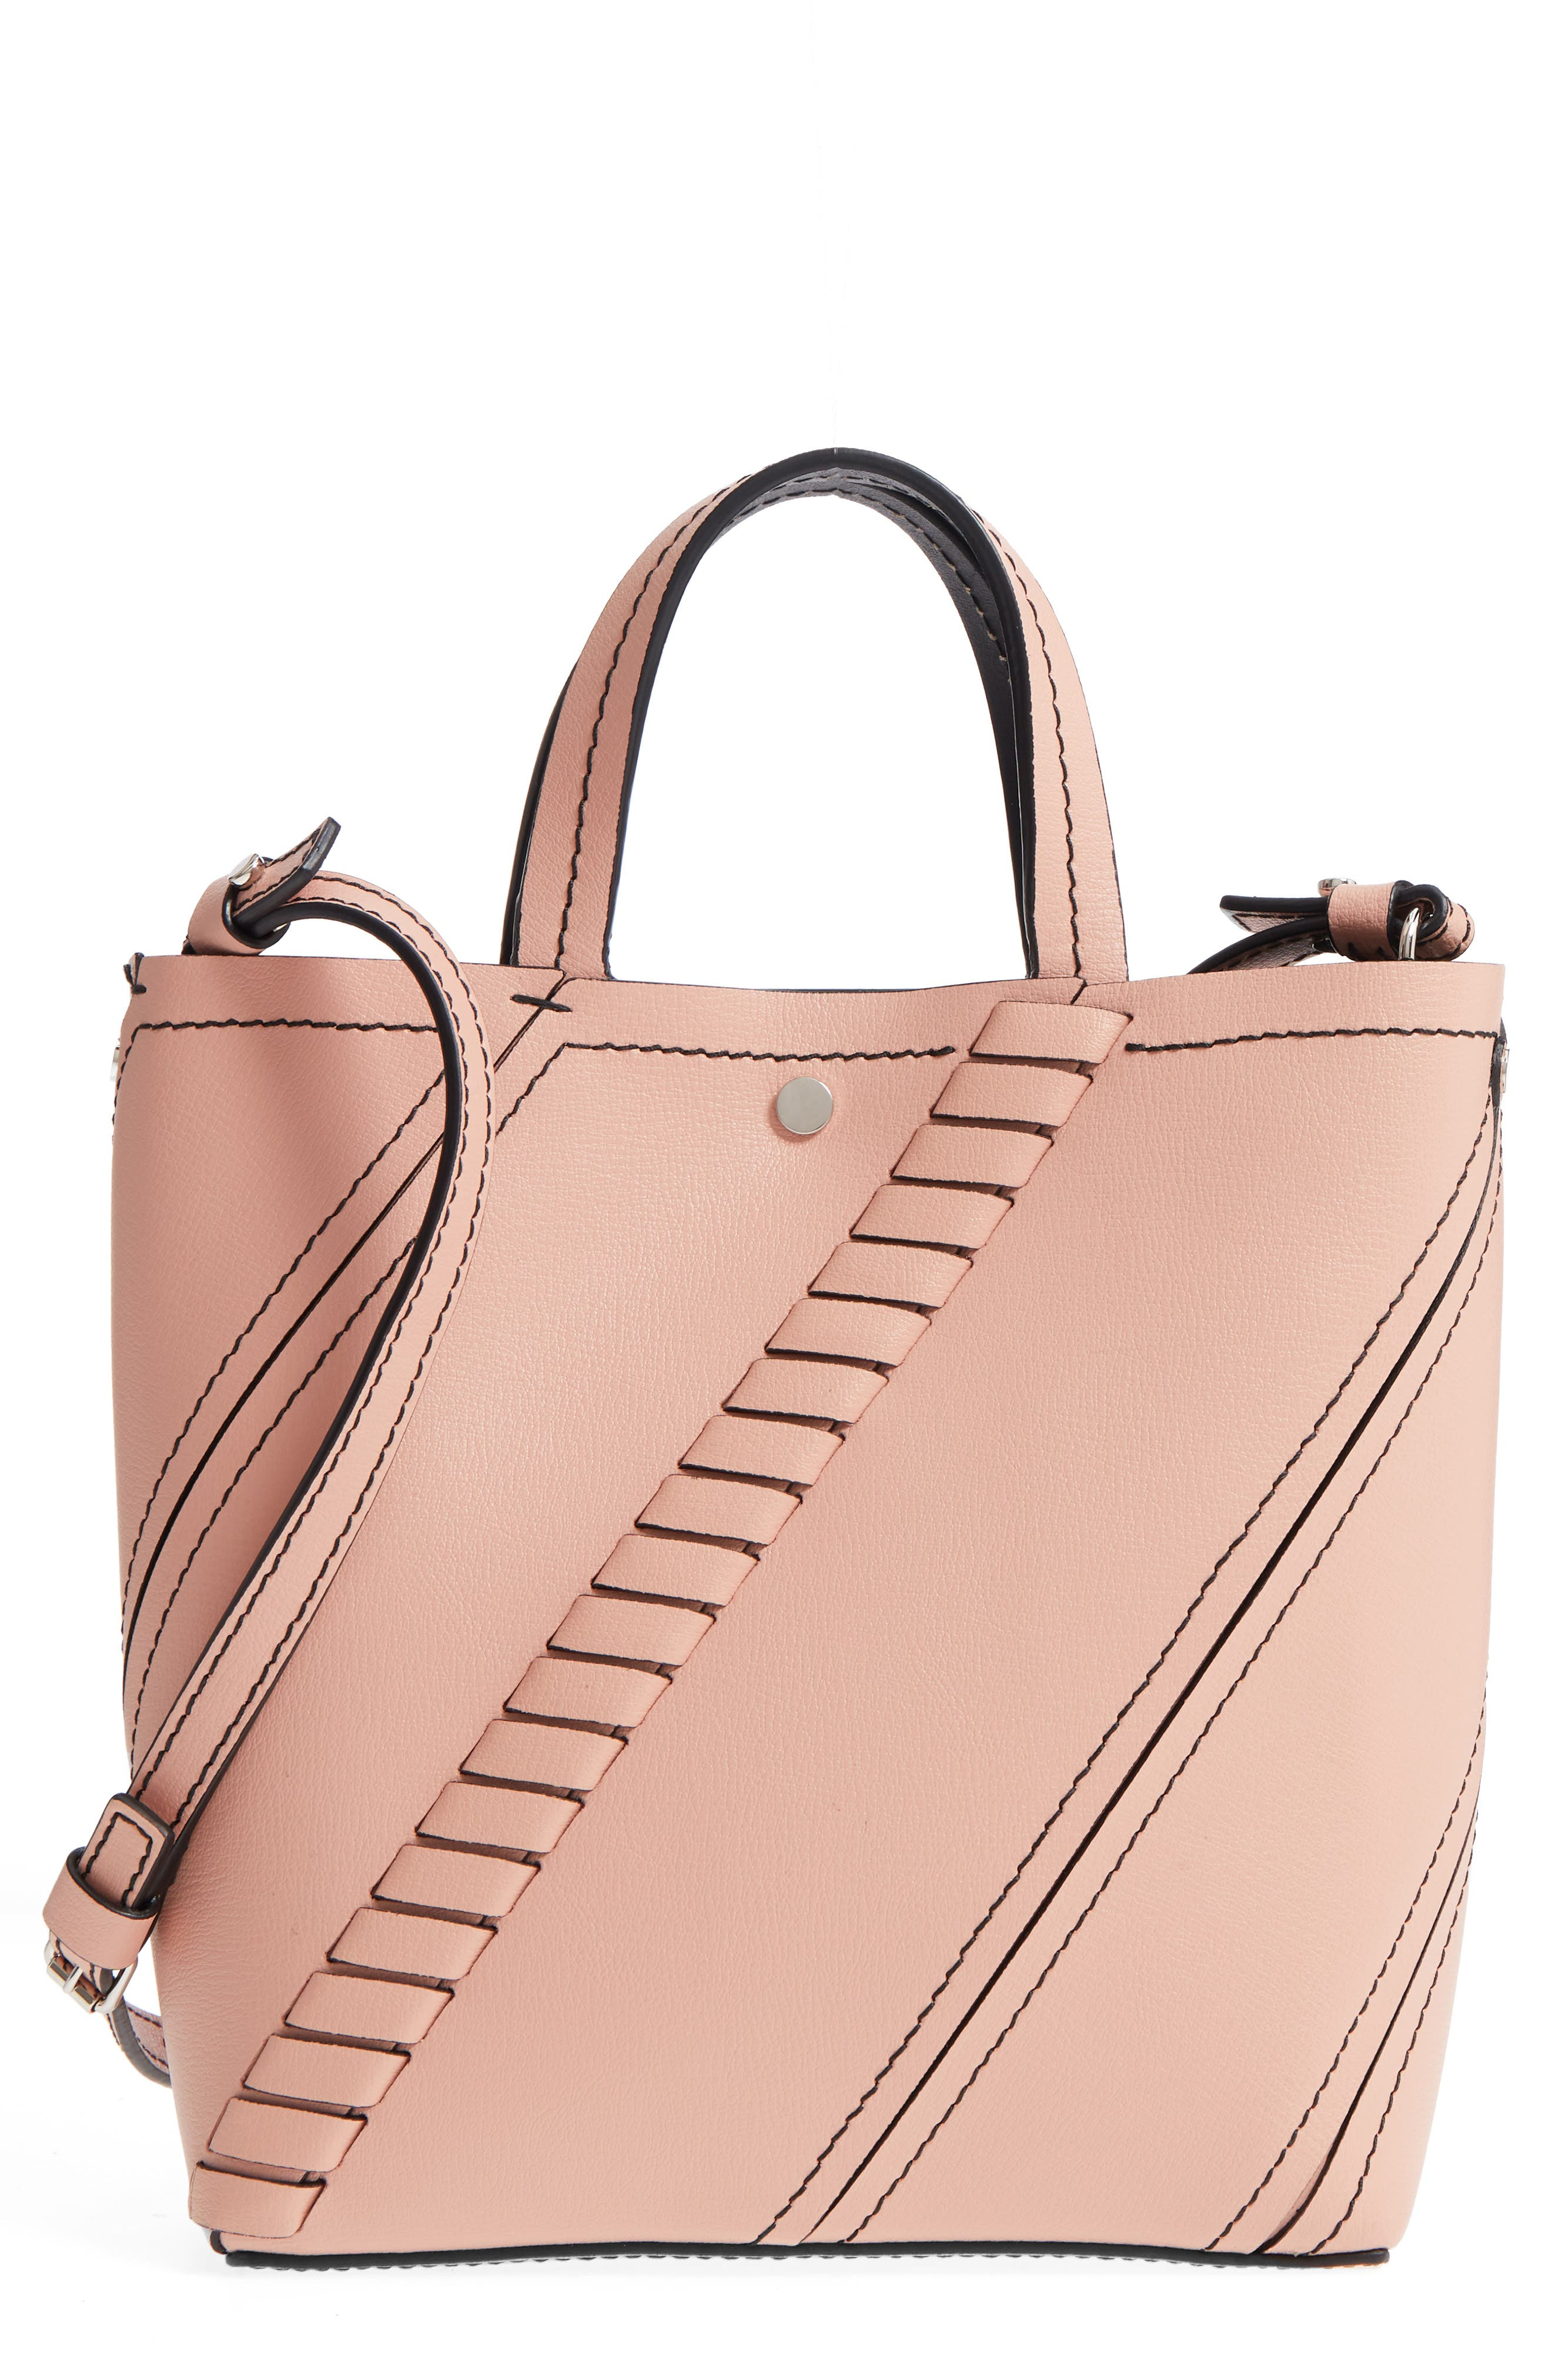 MINI HEX WHIPSTITCH CALFSKIN LEATHER TOTE - PINK